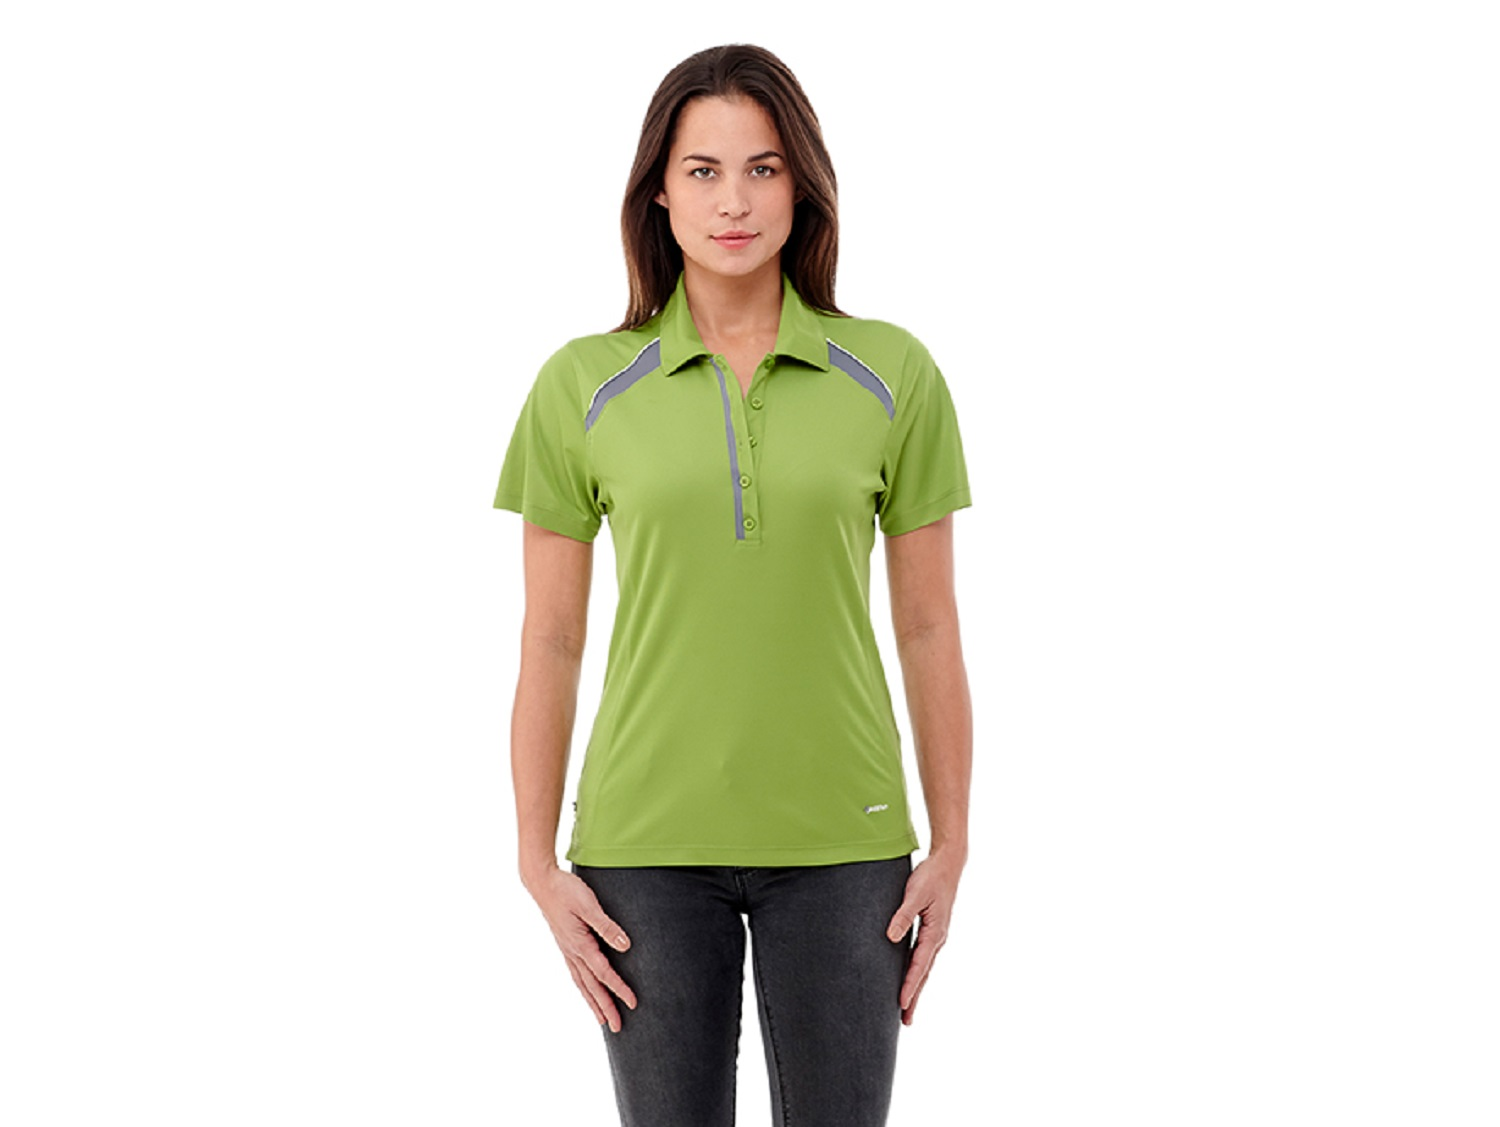 Quinn Short Sleeve Women's Polo Shirt, #96216 - Embroidered